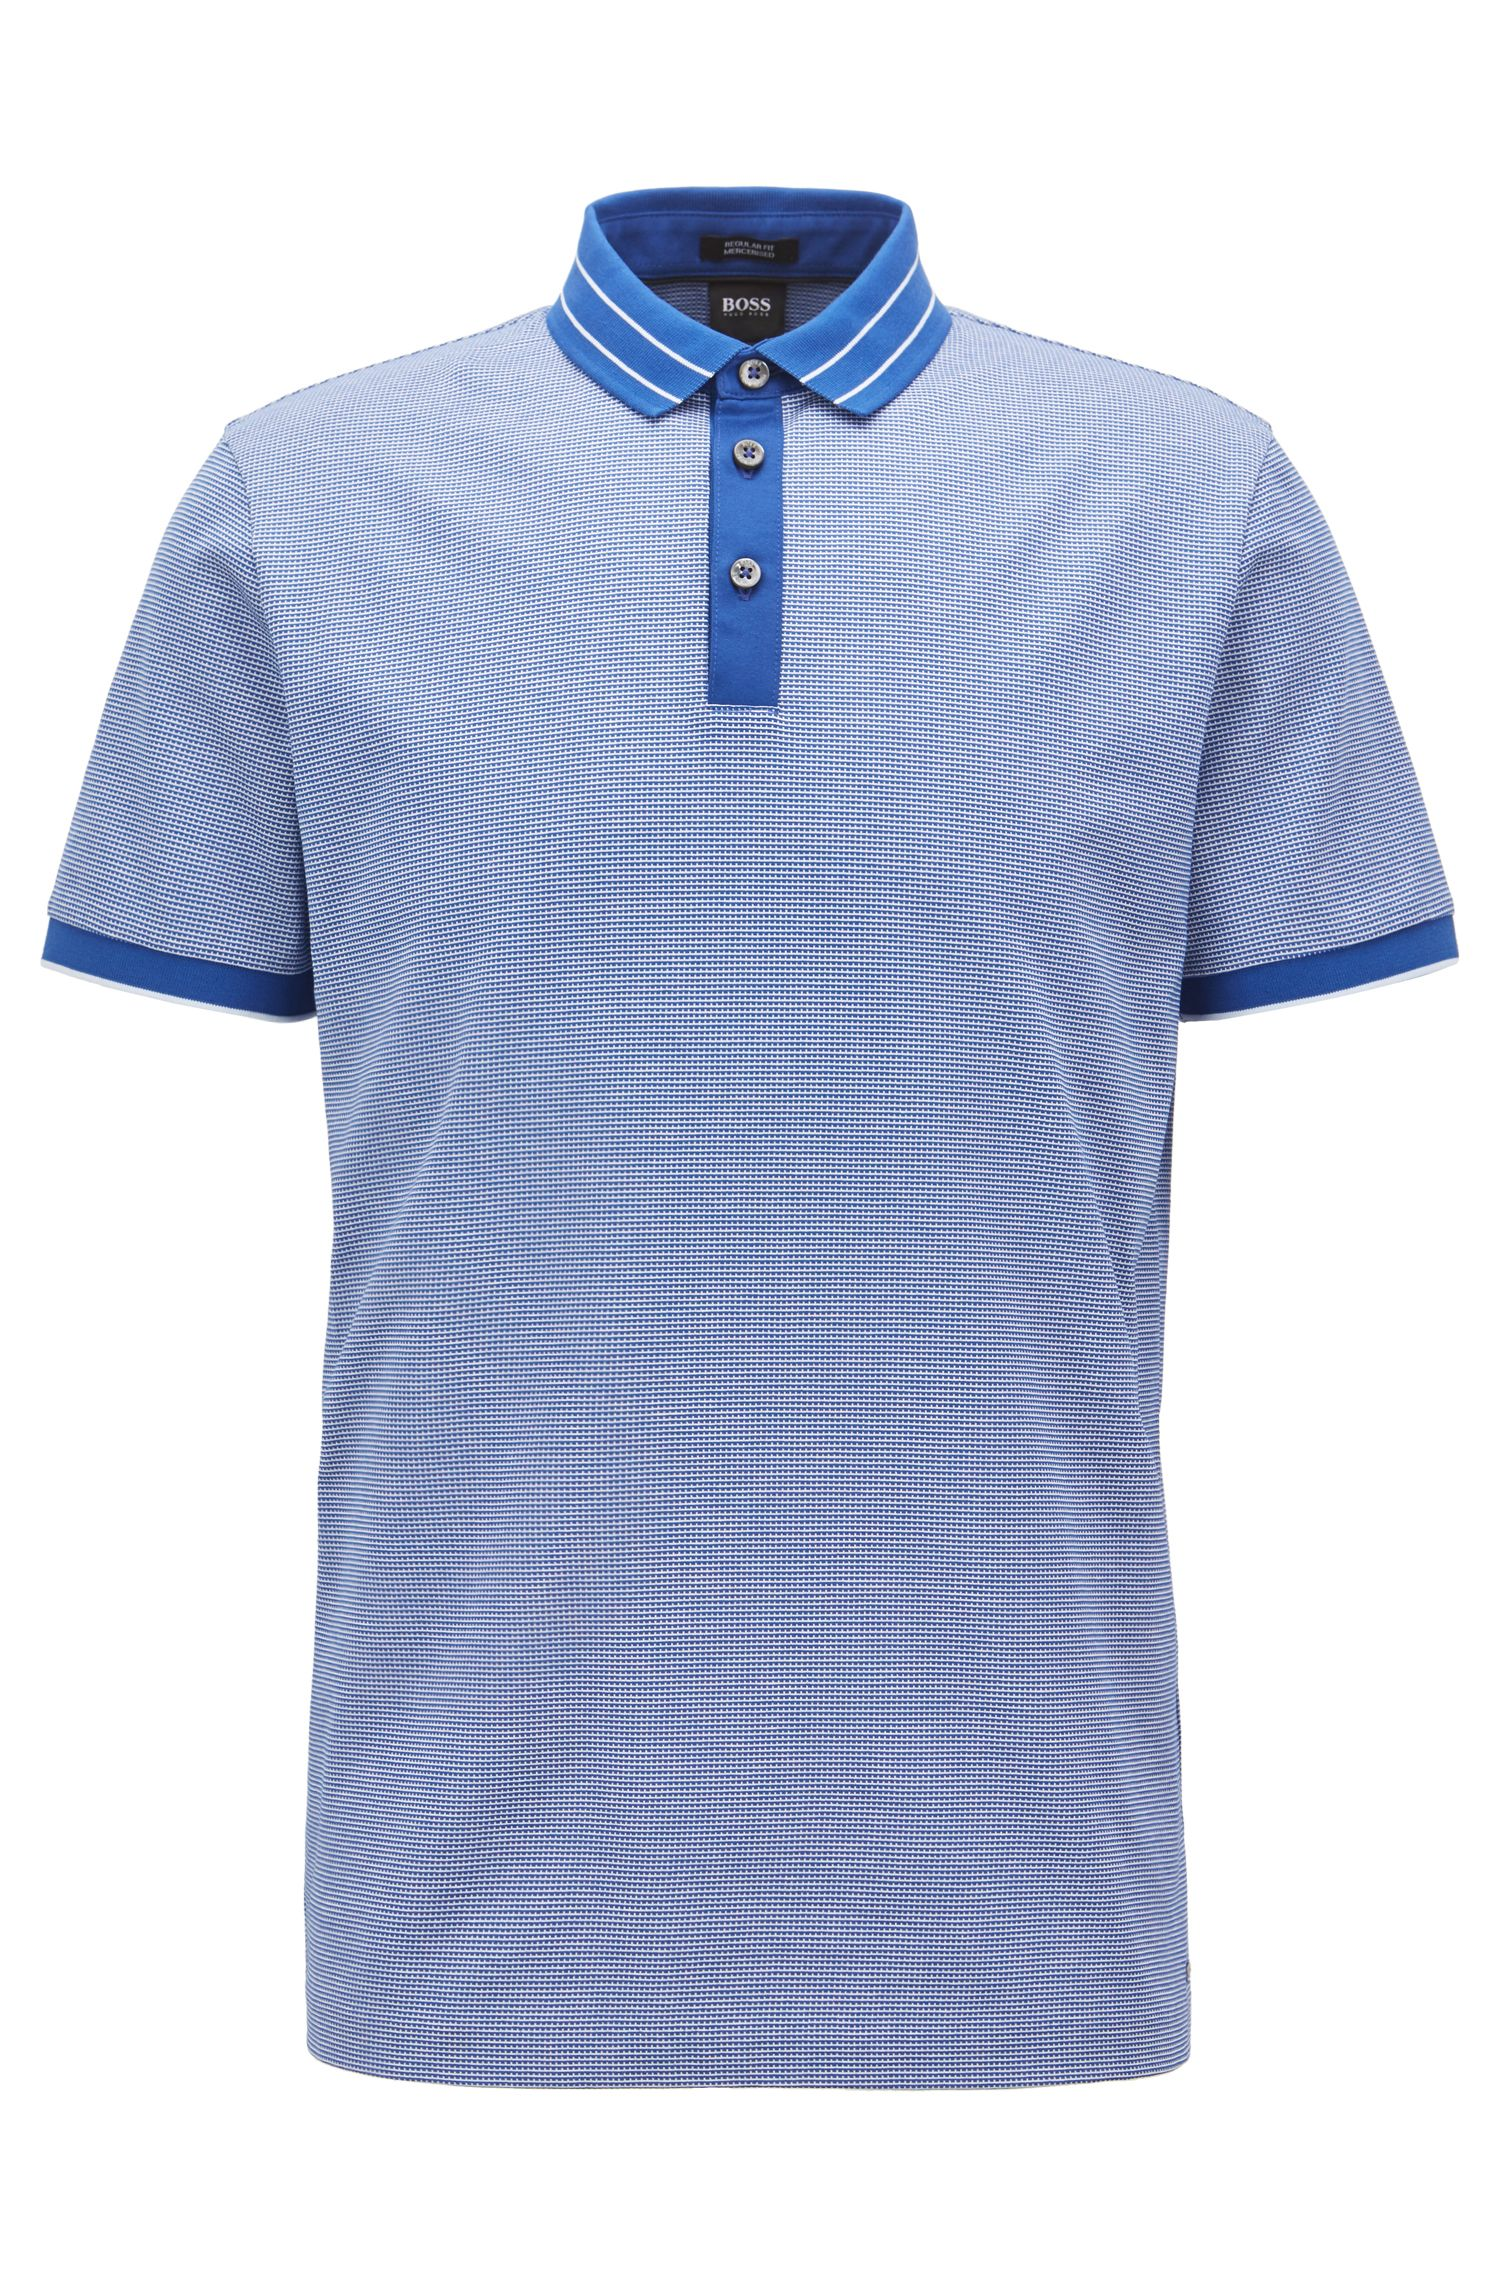 Micro-pattern polo shirt in mercerized cotton jacquard